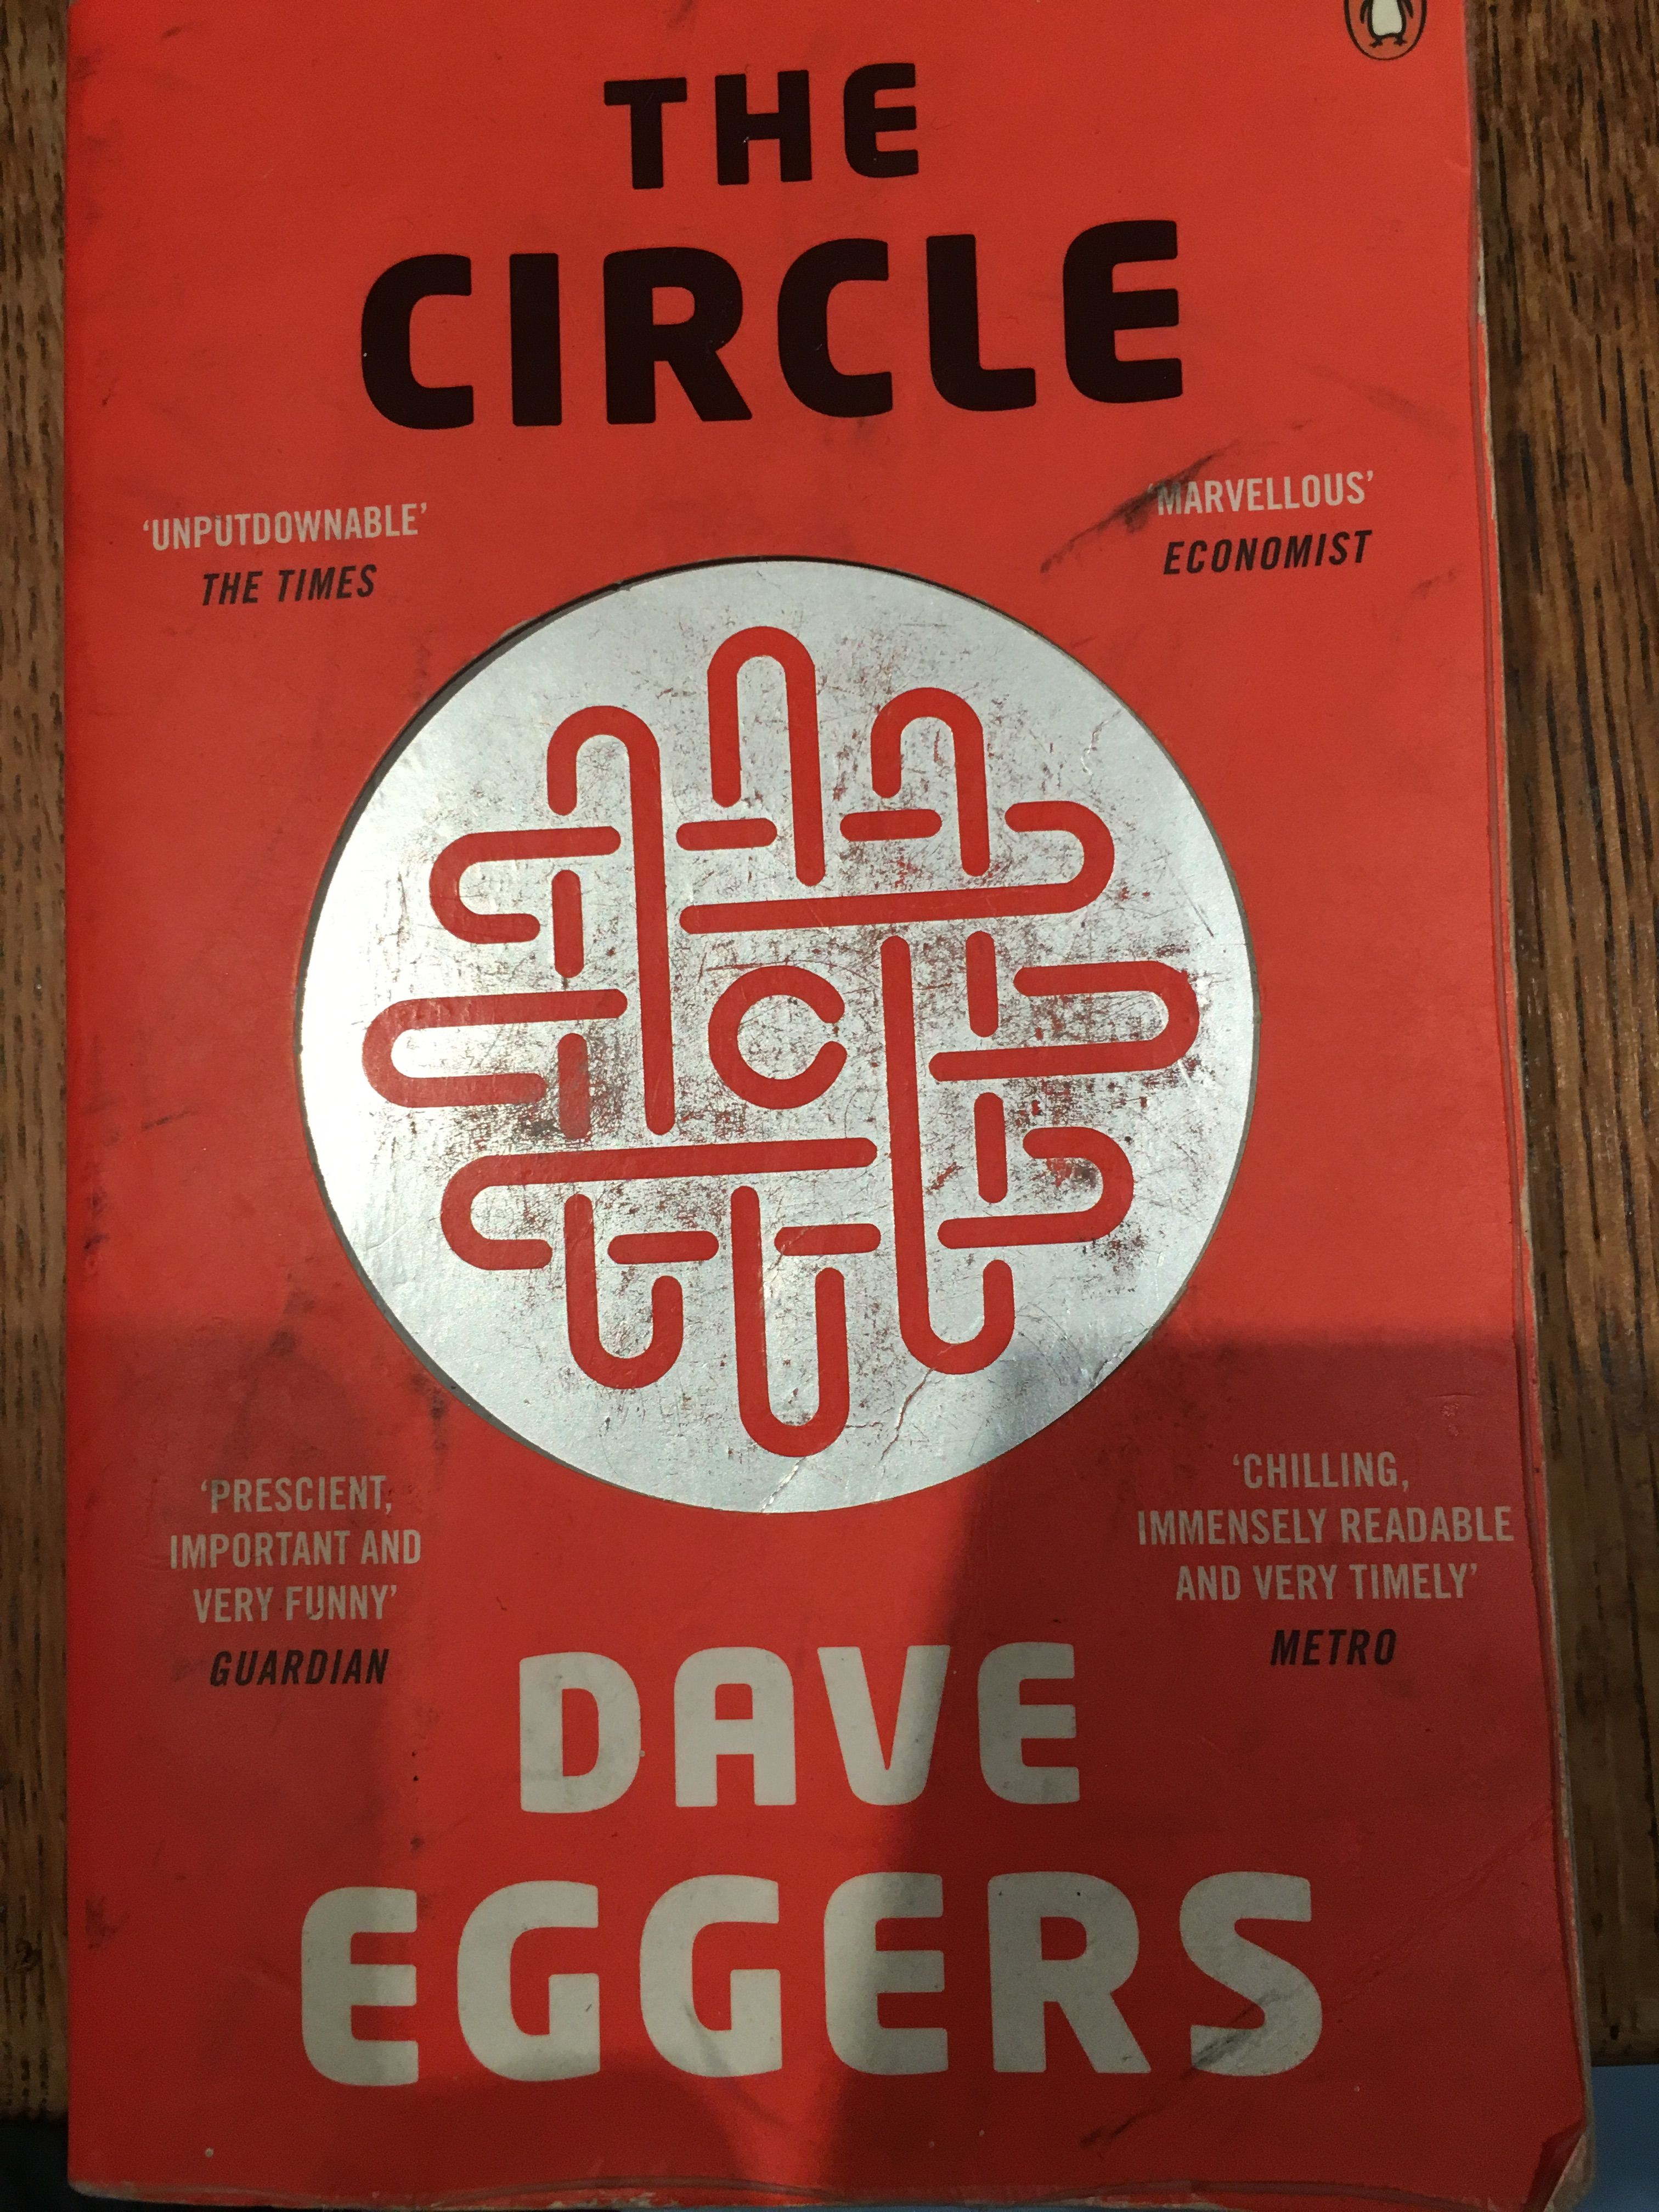 Pin by Laura Schamari on books & movies Dave eggers